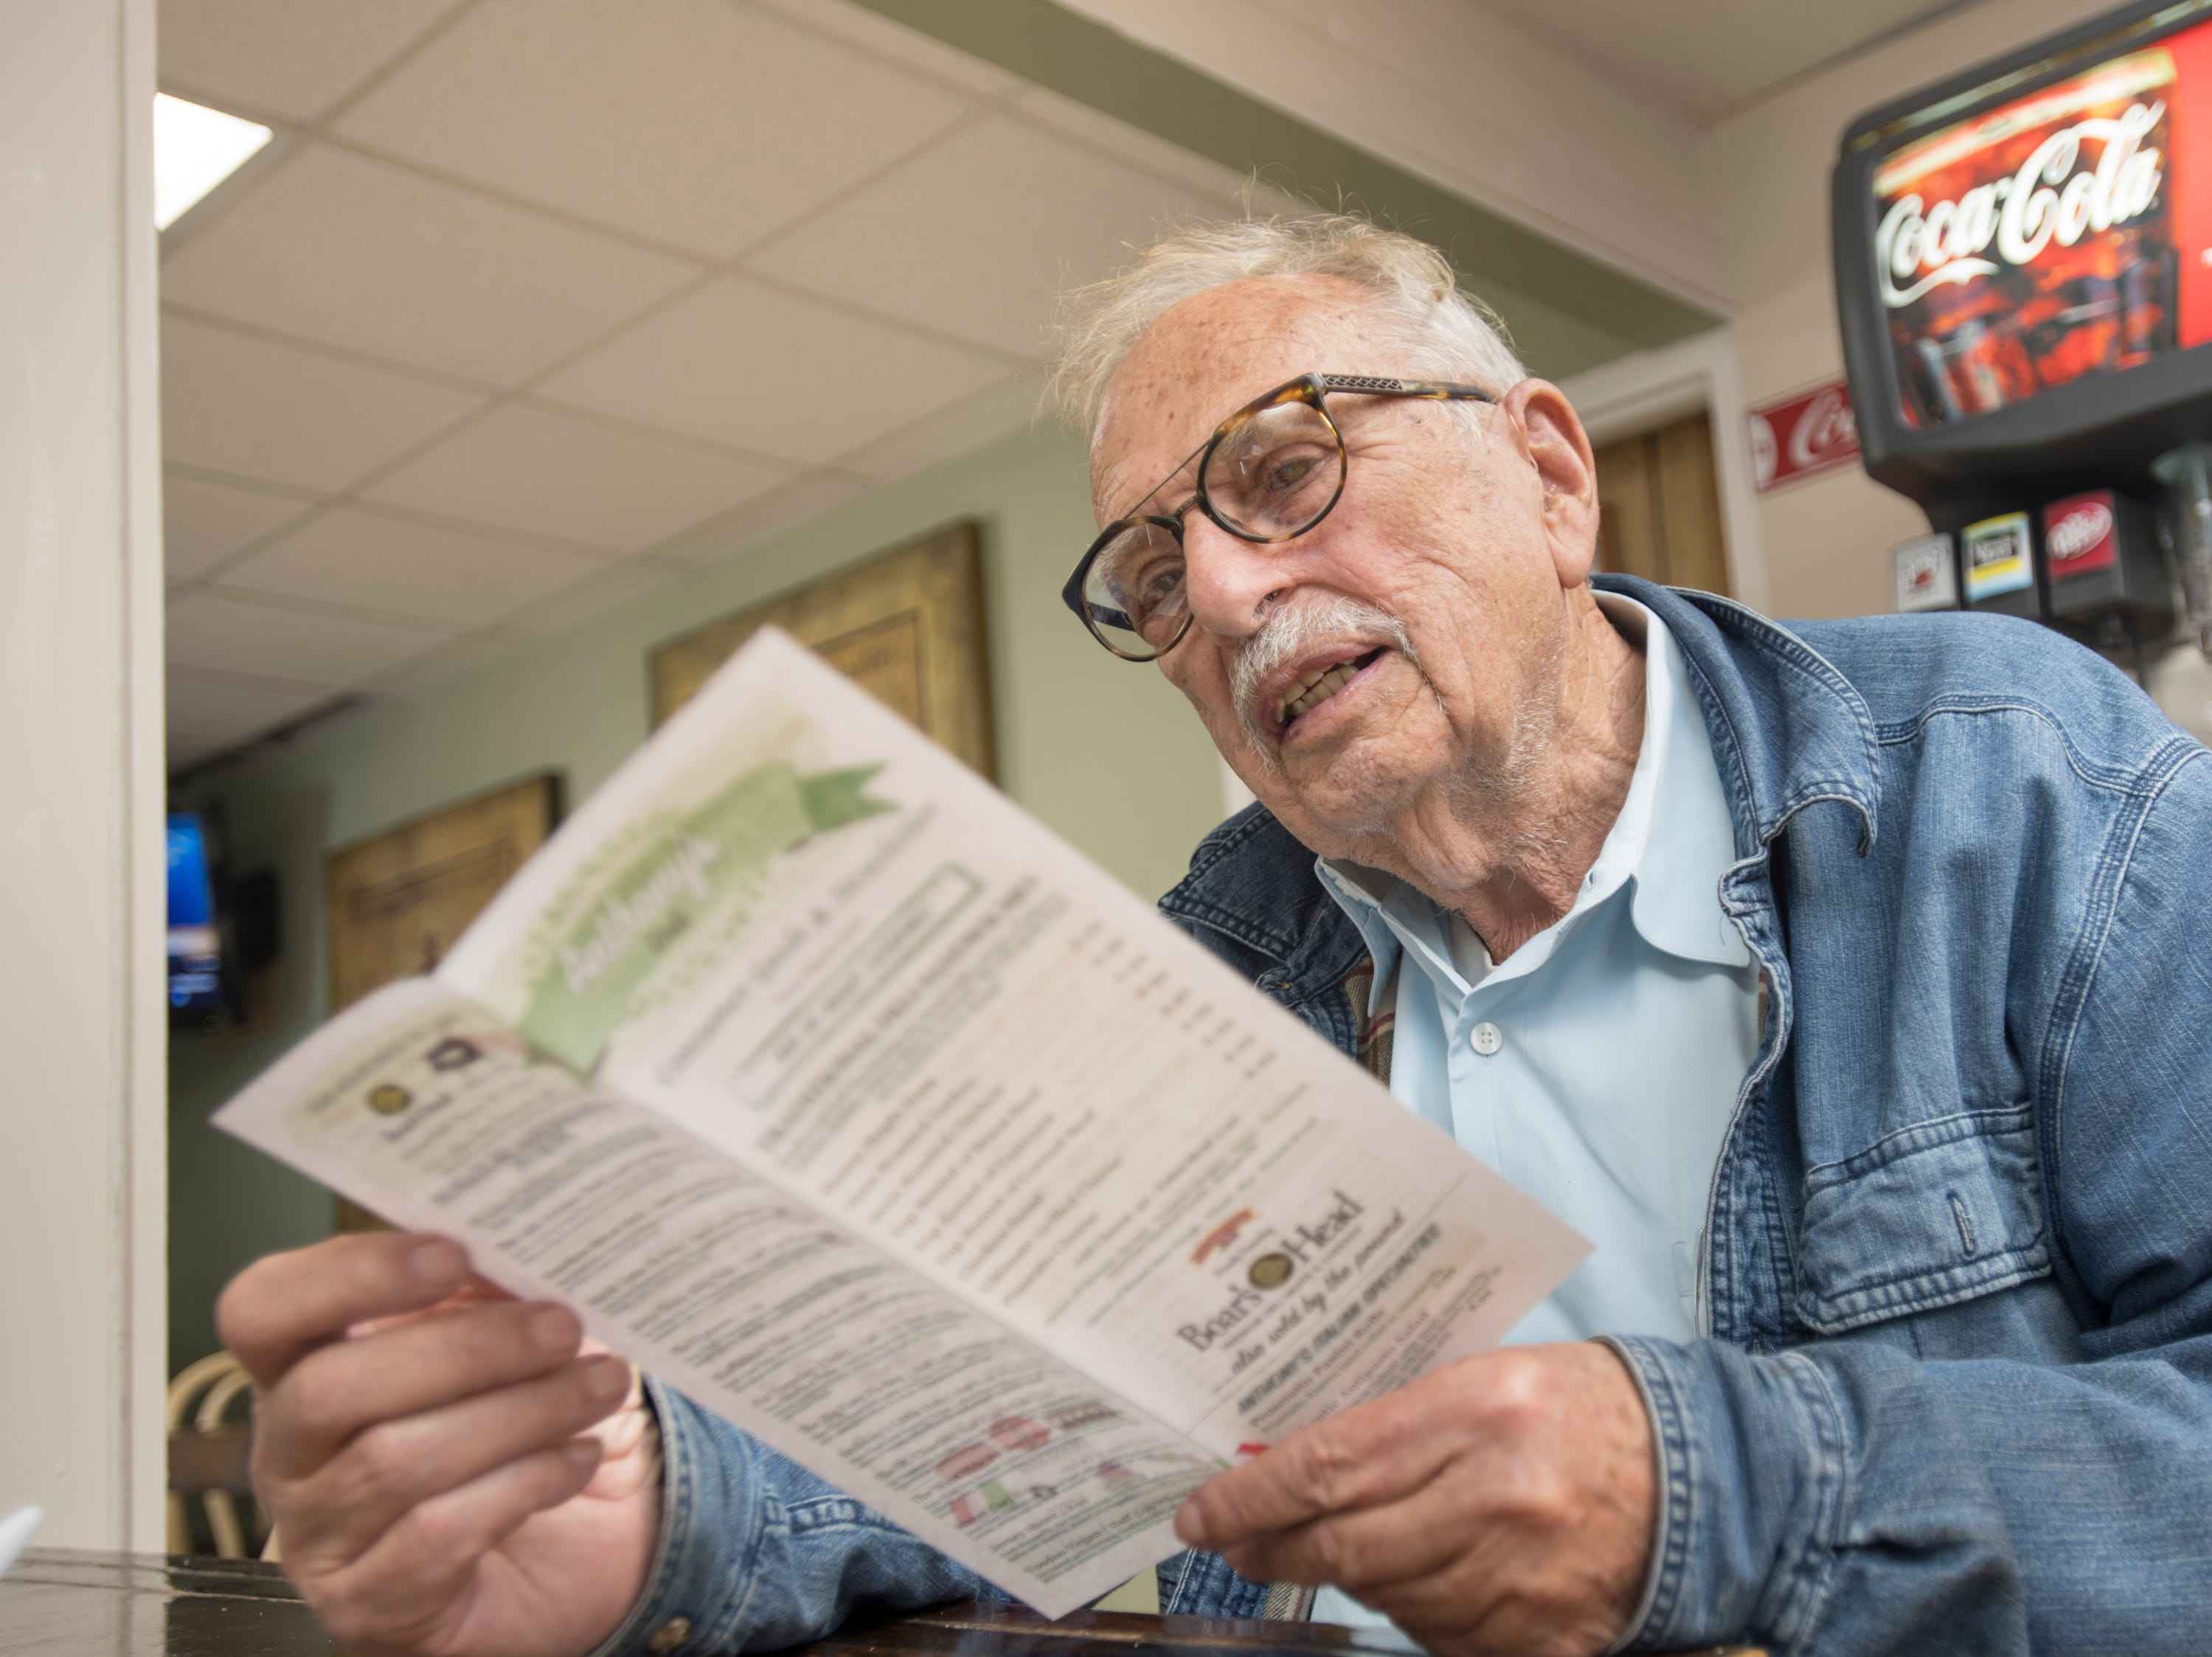 Don Fabini looks over the menu at Anthony's Deli on Lilian Highway in Pensacola on Monday, March 25, 2019.